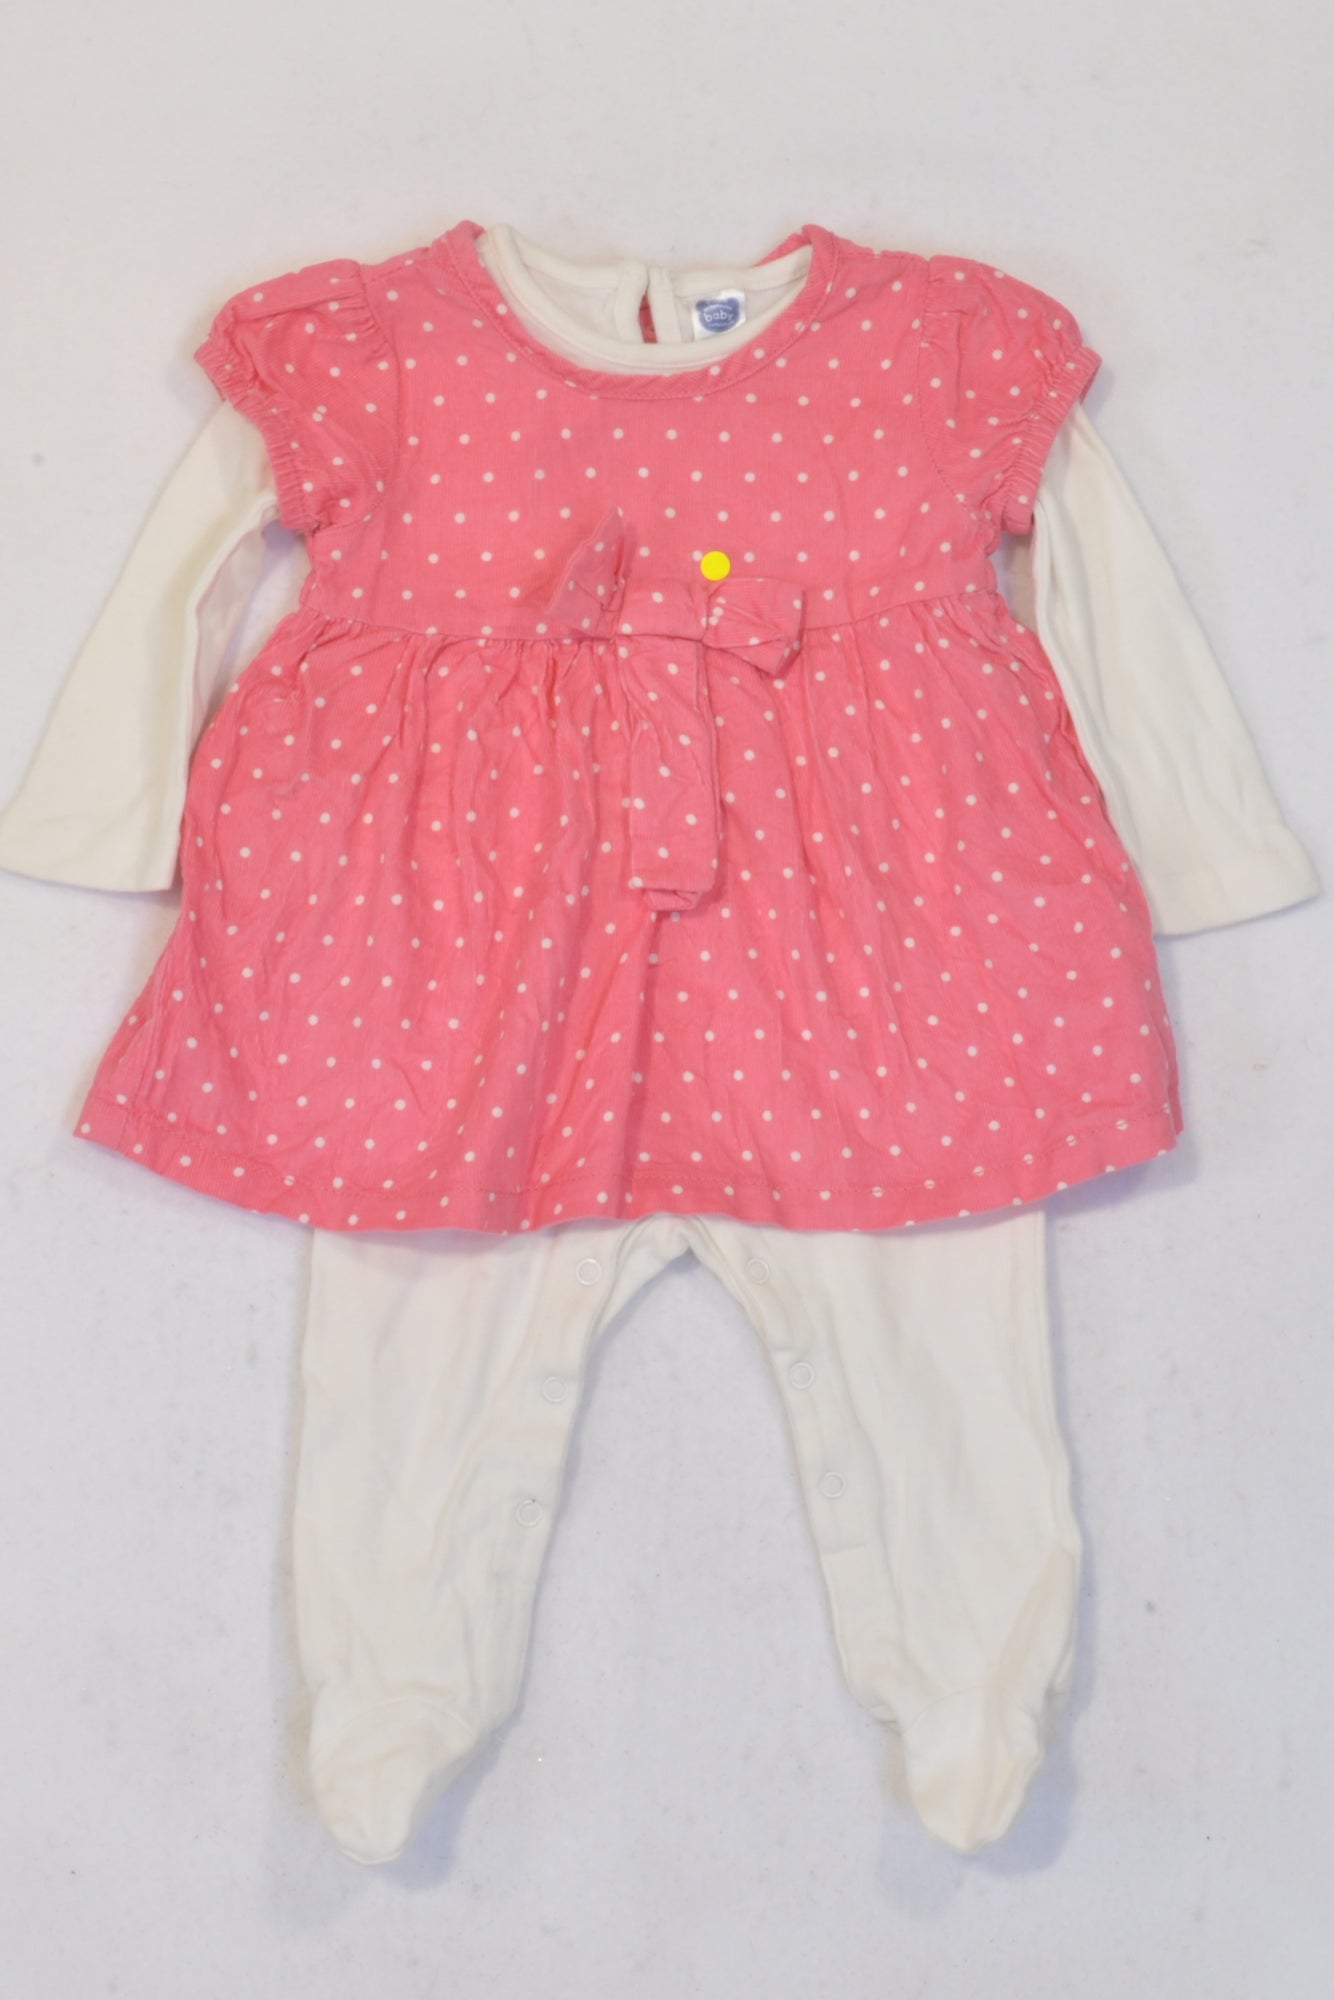 Ackermans Pink Dotty Corduroy Dress & Onesie Outfit Girls 3-6 months